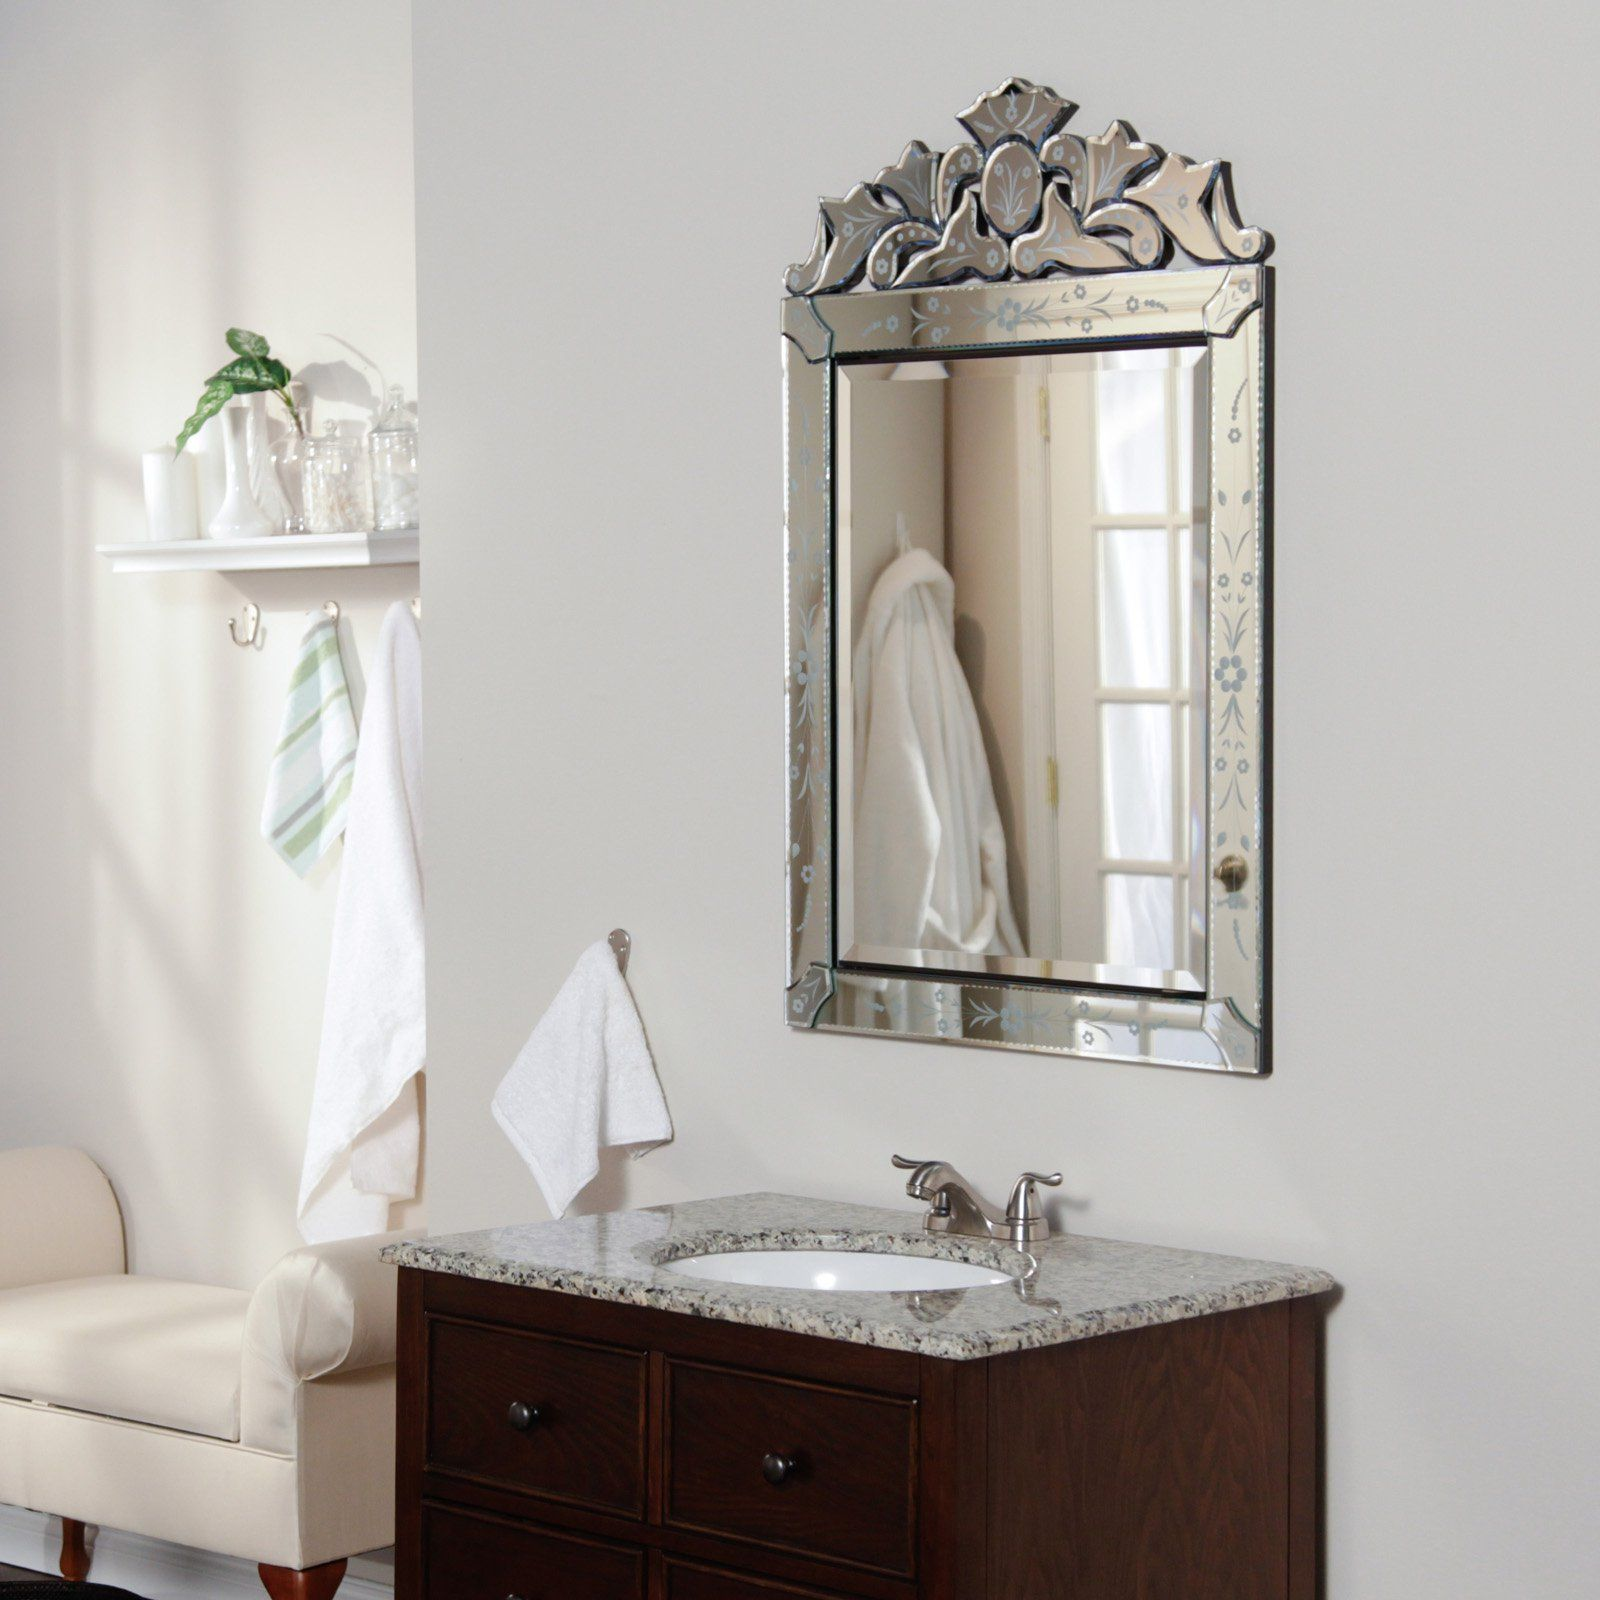 Venetian mirror medicine cabinet - Afina Single Door Radiance ...